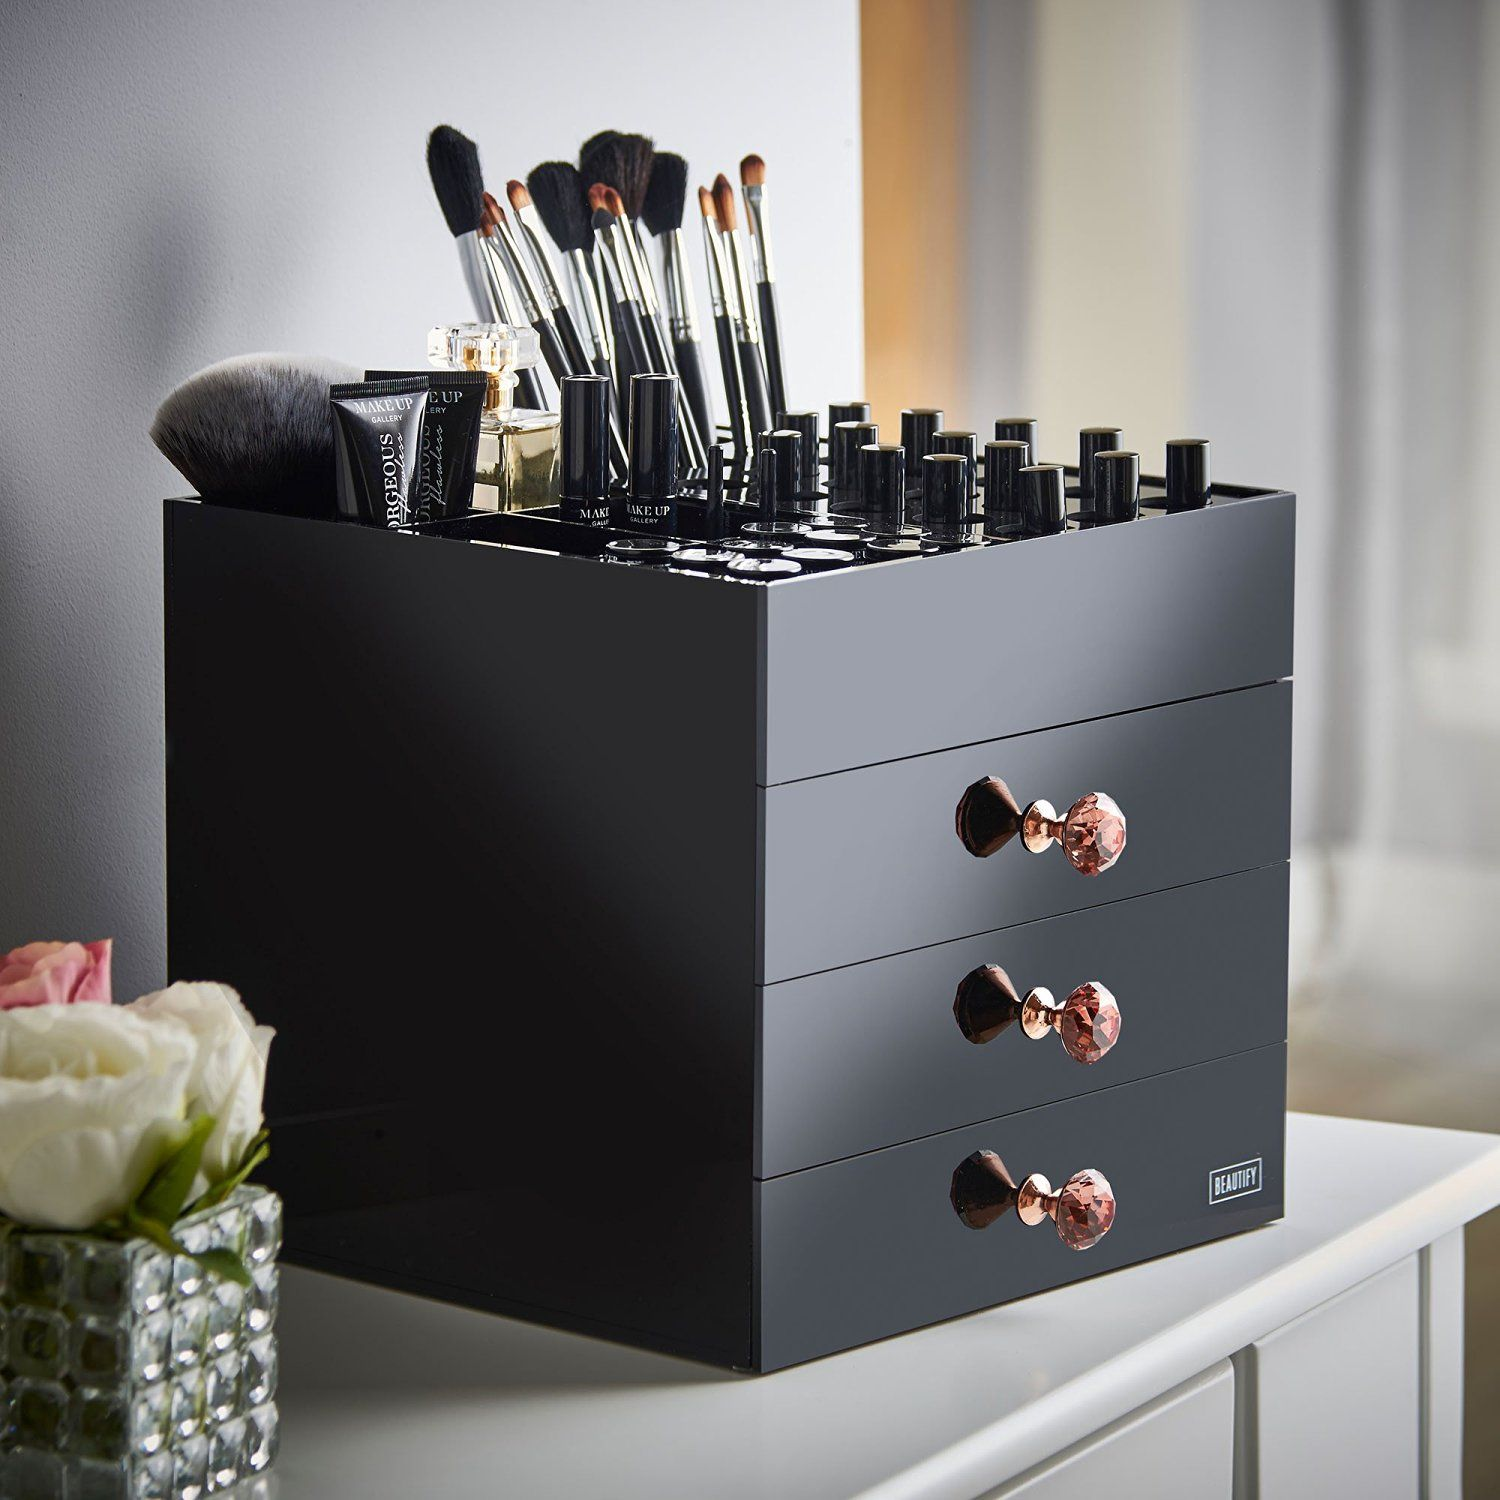 Beautify Large Black Acrylic Cosmetic Makeup Organizer Stand With 3 Drawers 21 Lipstick Holders 6 Individual Upper Storage Sections